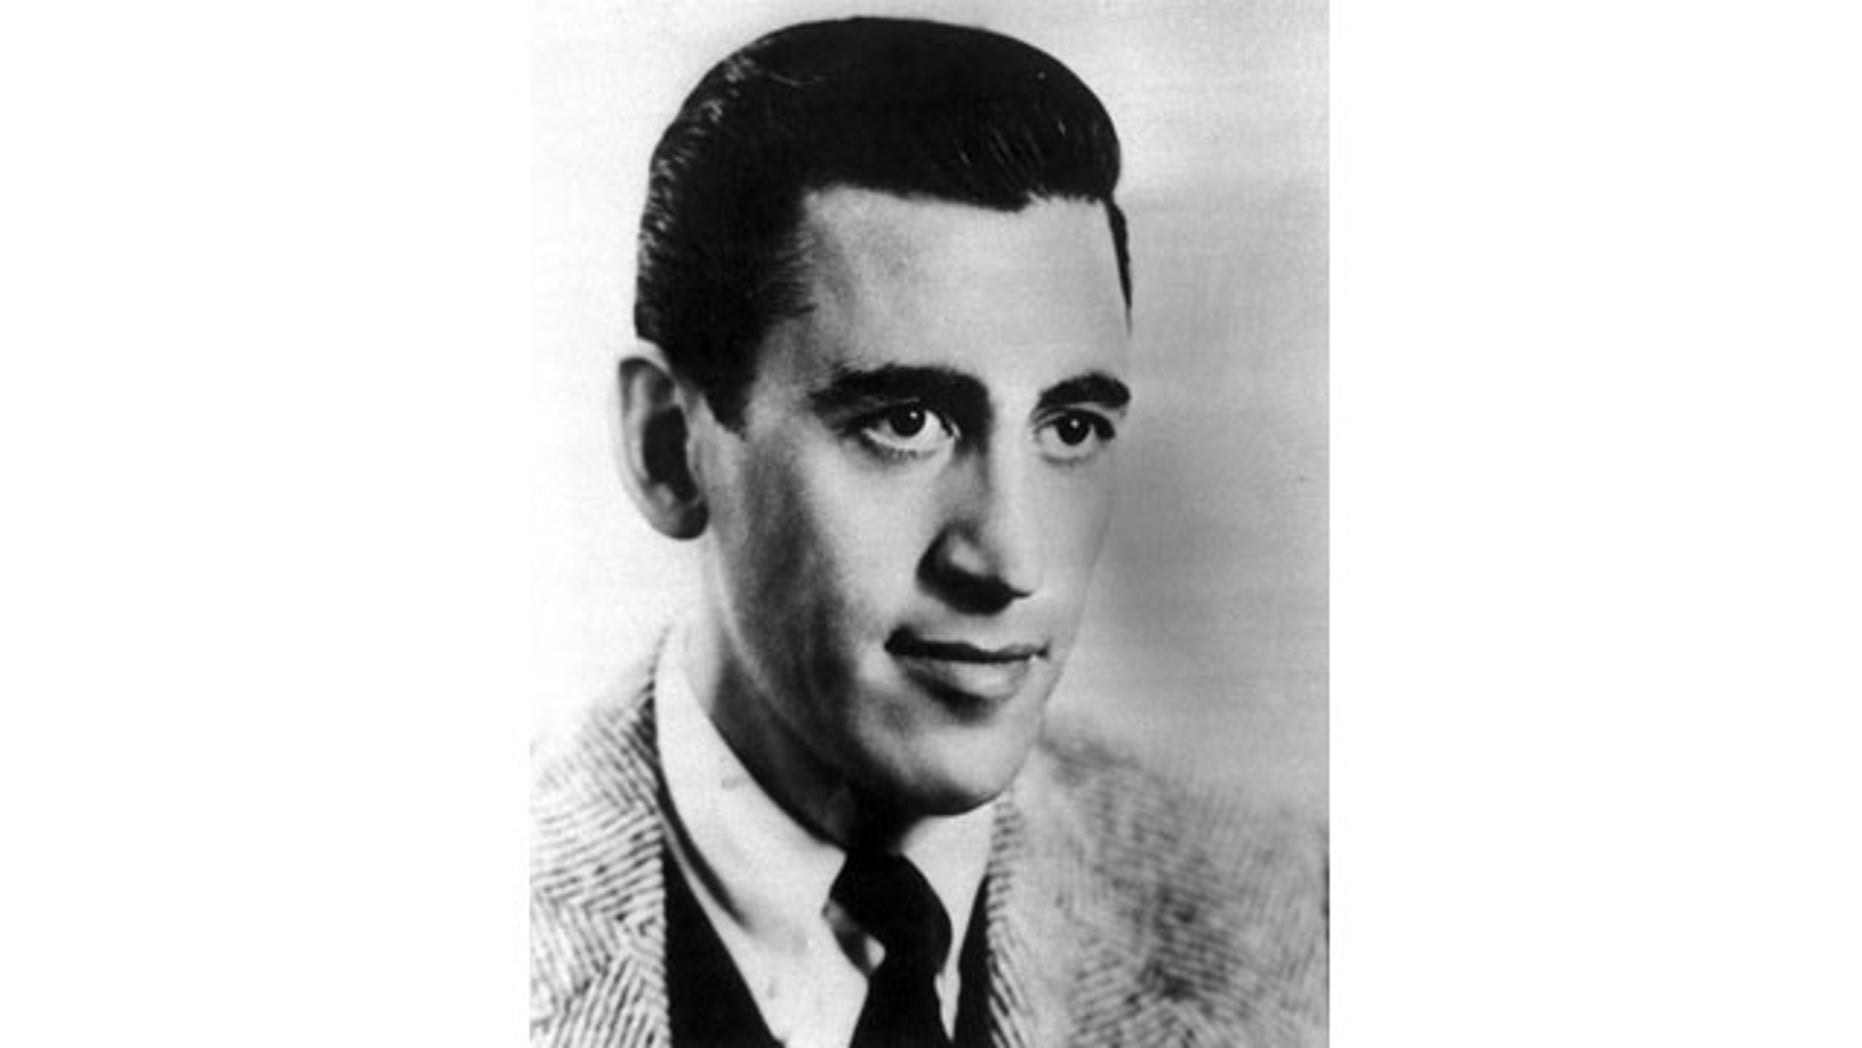 """FILE - A 1951 file photo shows J.D. Salinger, author of """"The Catcher in the Rye"""", """"Nine Stories"""", and """"Franny and Zooey.""""(AP Photo)"""